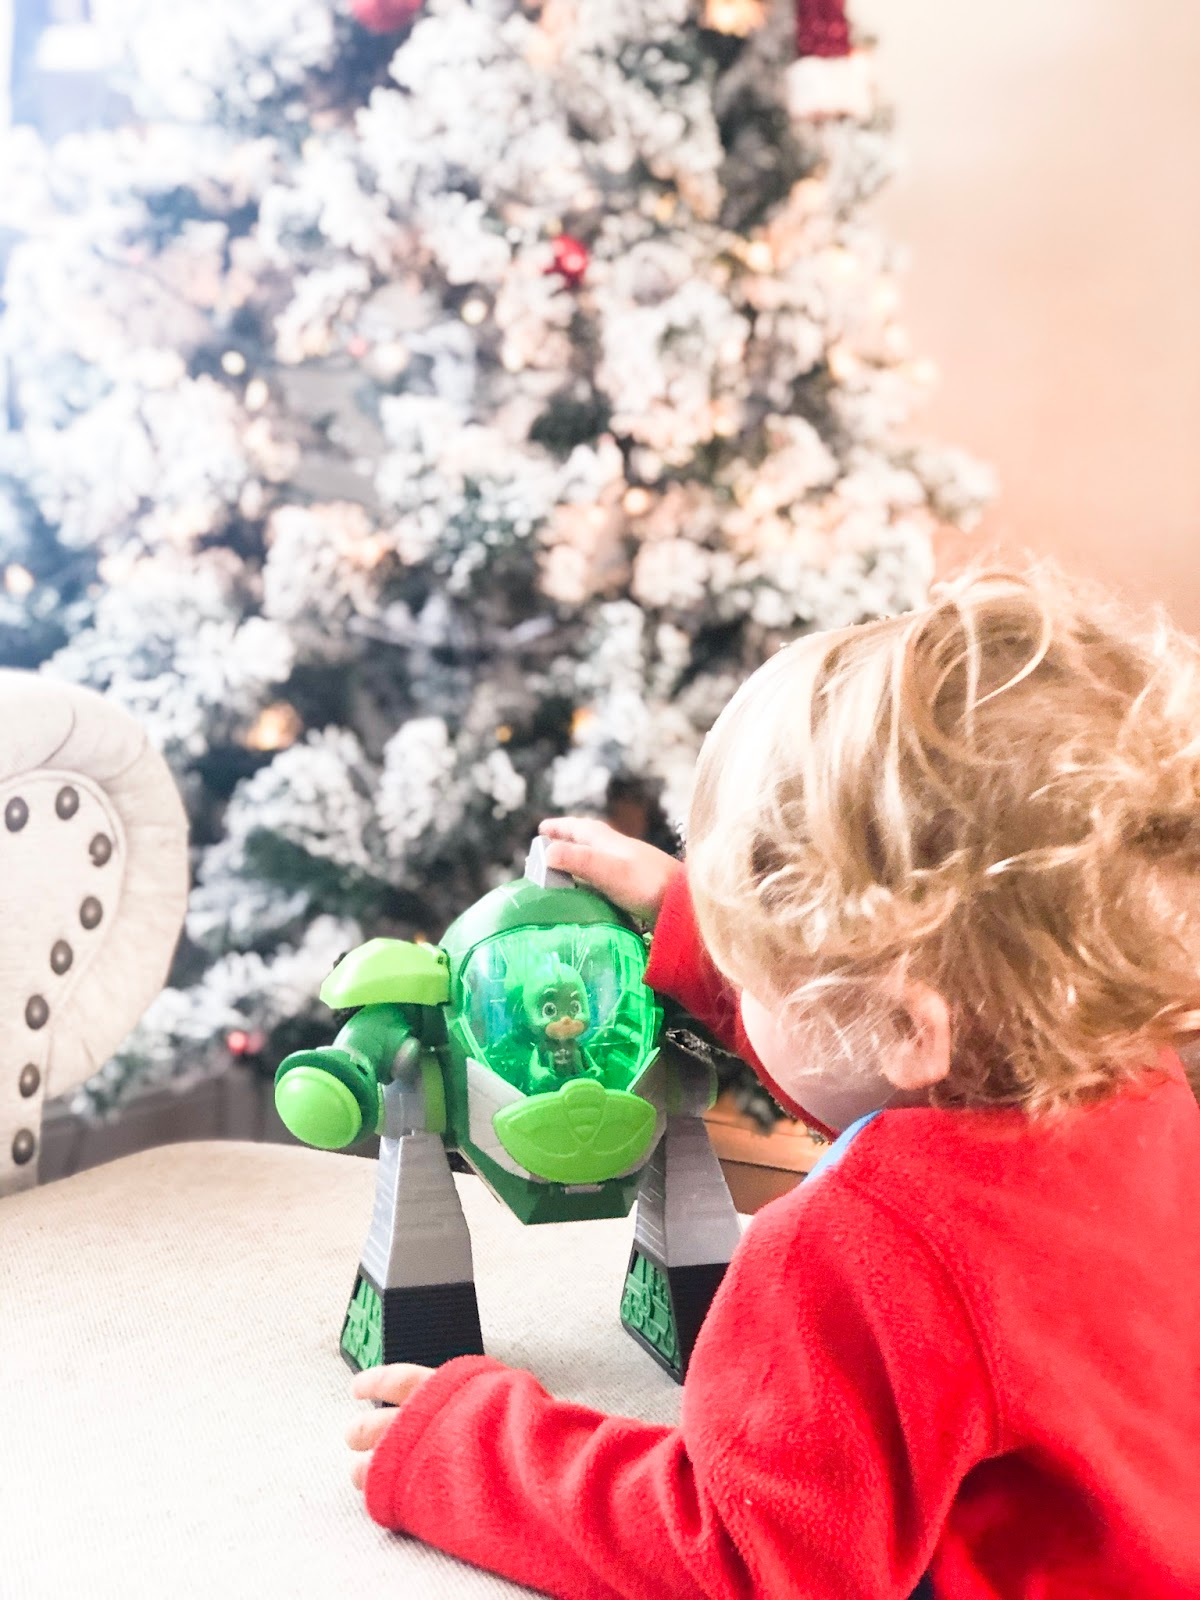 pj masks, holidays, holiday time, christmastime, christmas, holiday fun, christmas fun, ny mom, long island mom, long island parents, new york blogger, new york mom